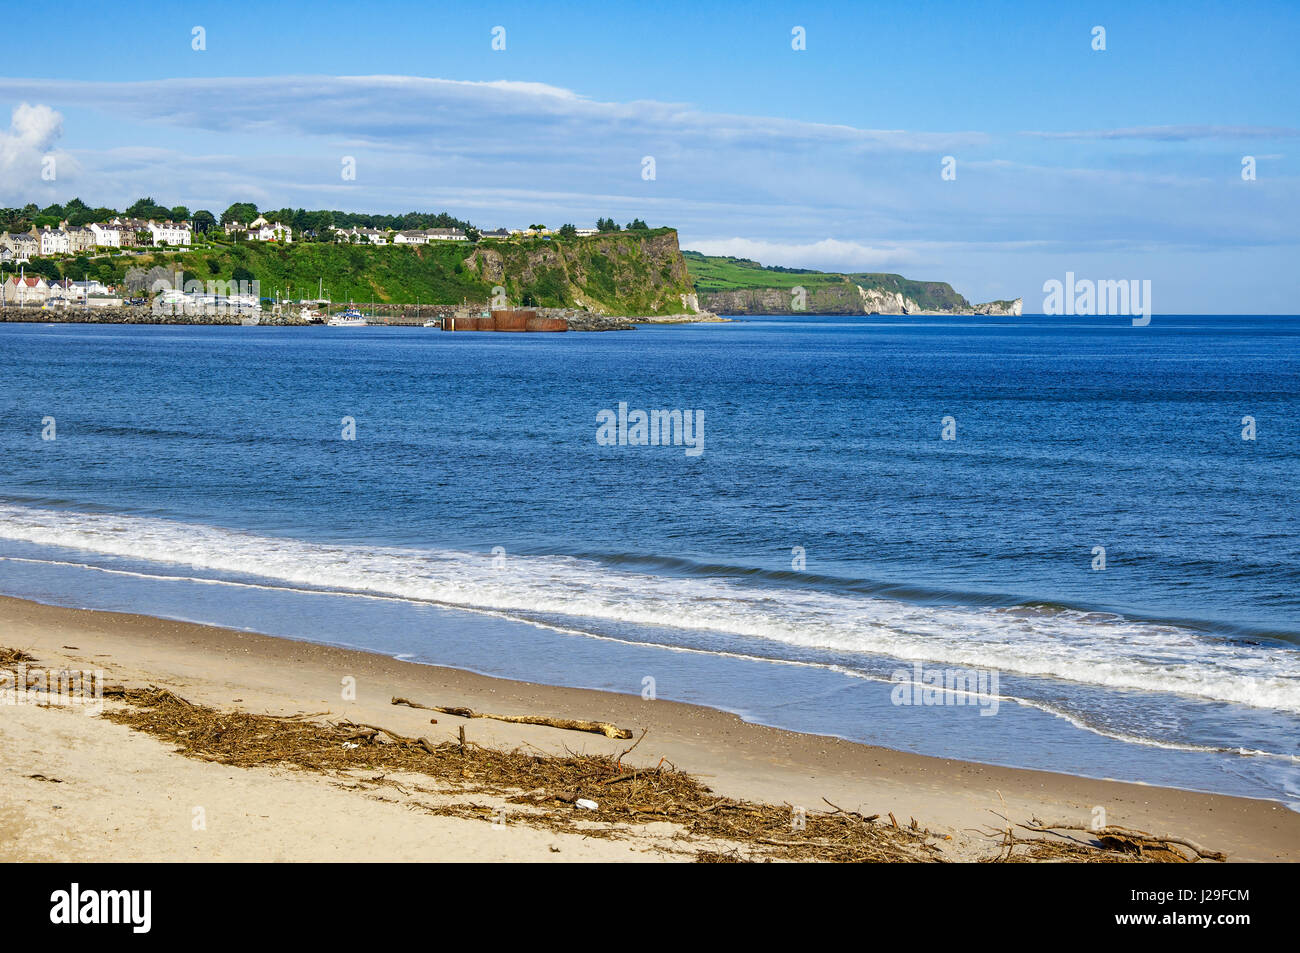 Beach, cliffs, harbor and Atlanic coast at Ballycastle in County Antrim, Northern Ireland, UK, with the far view - Stock Image